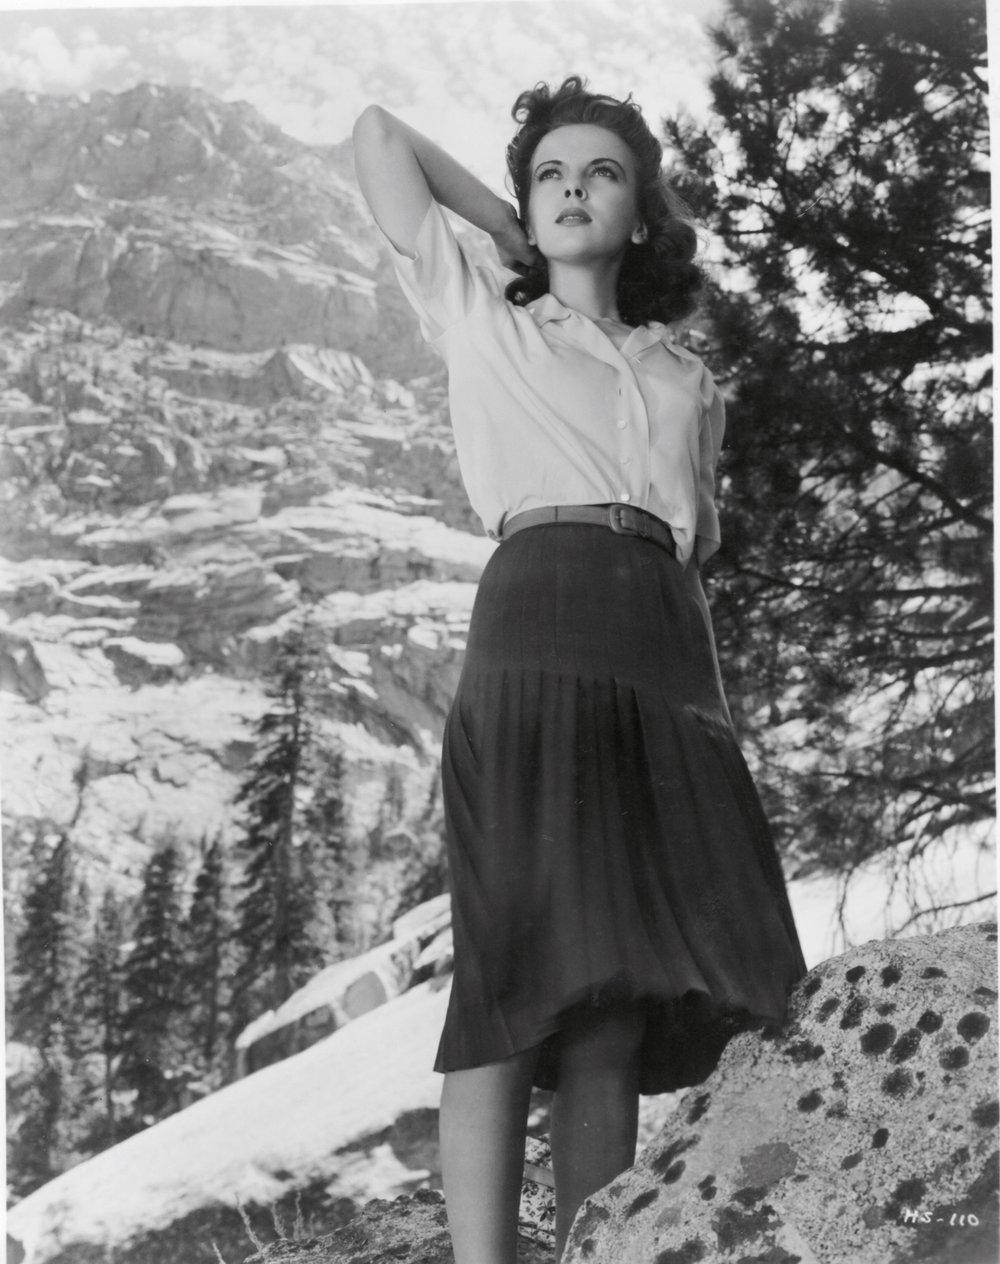 Ida Lupino as Marie at Whitney Portal where her boyfriend Earle would meet his death. At the time she was recovering from measles.